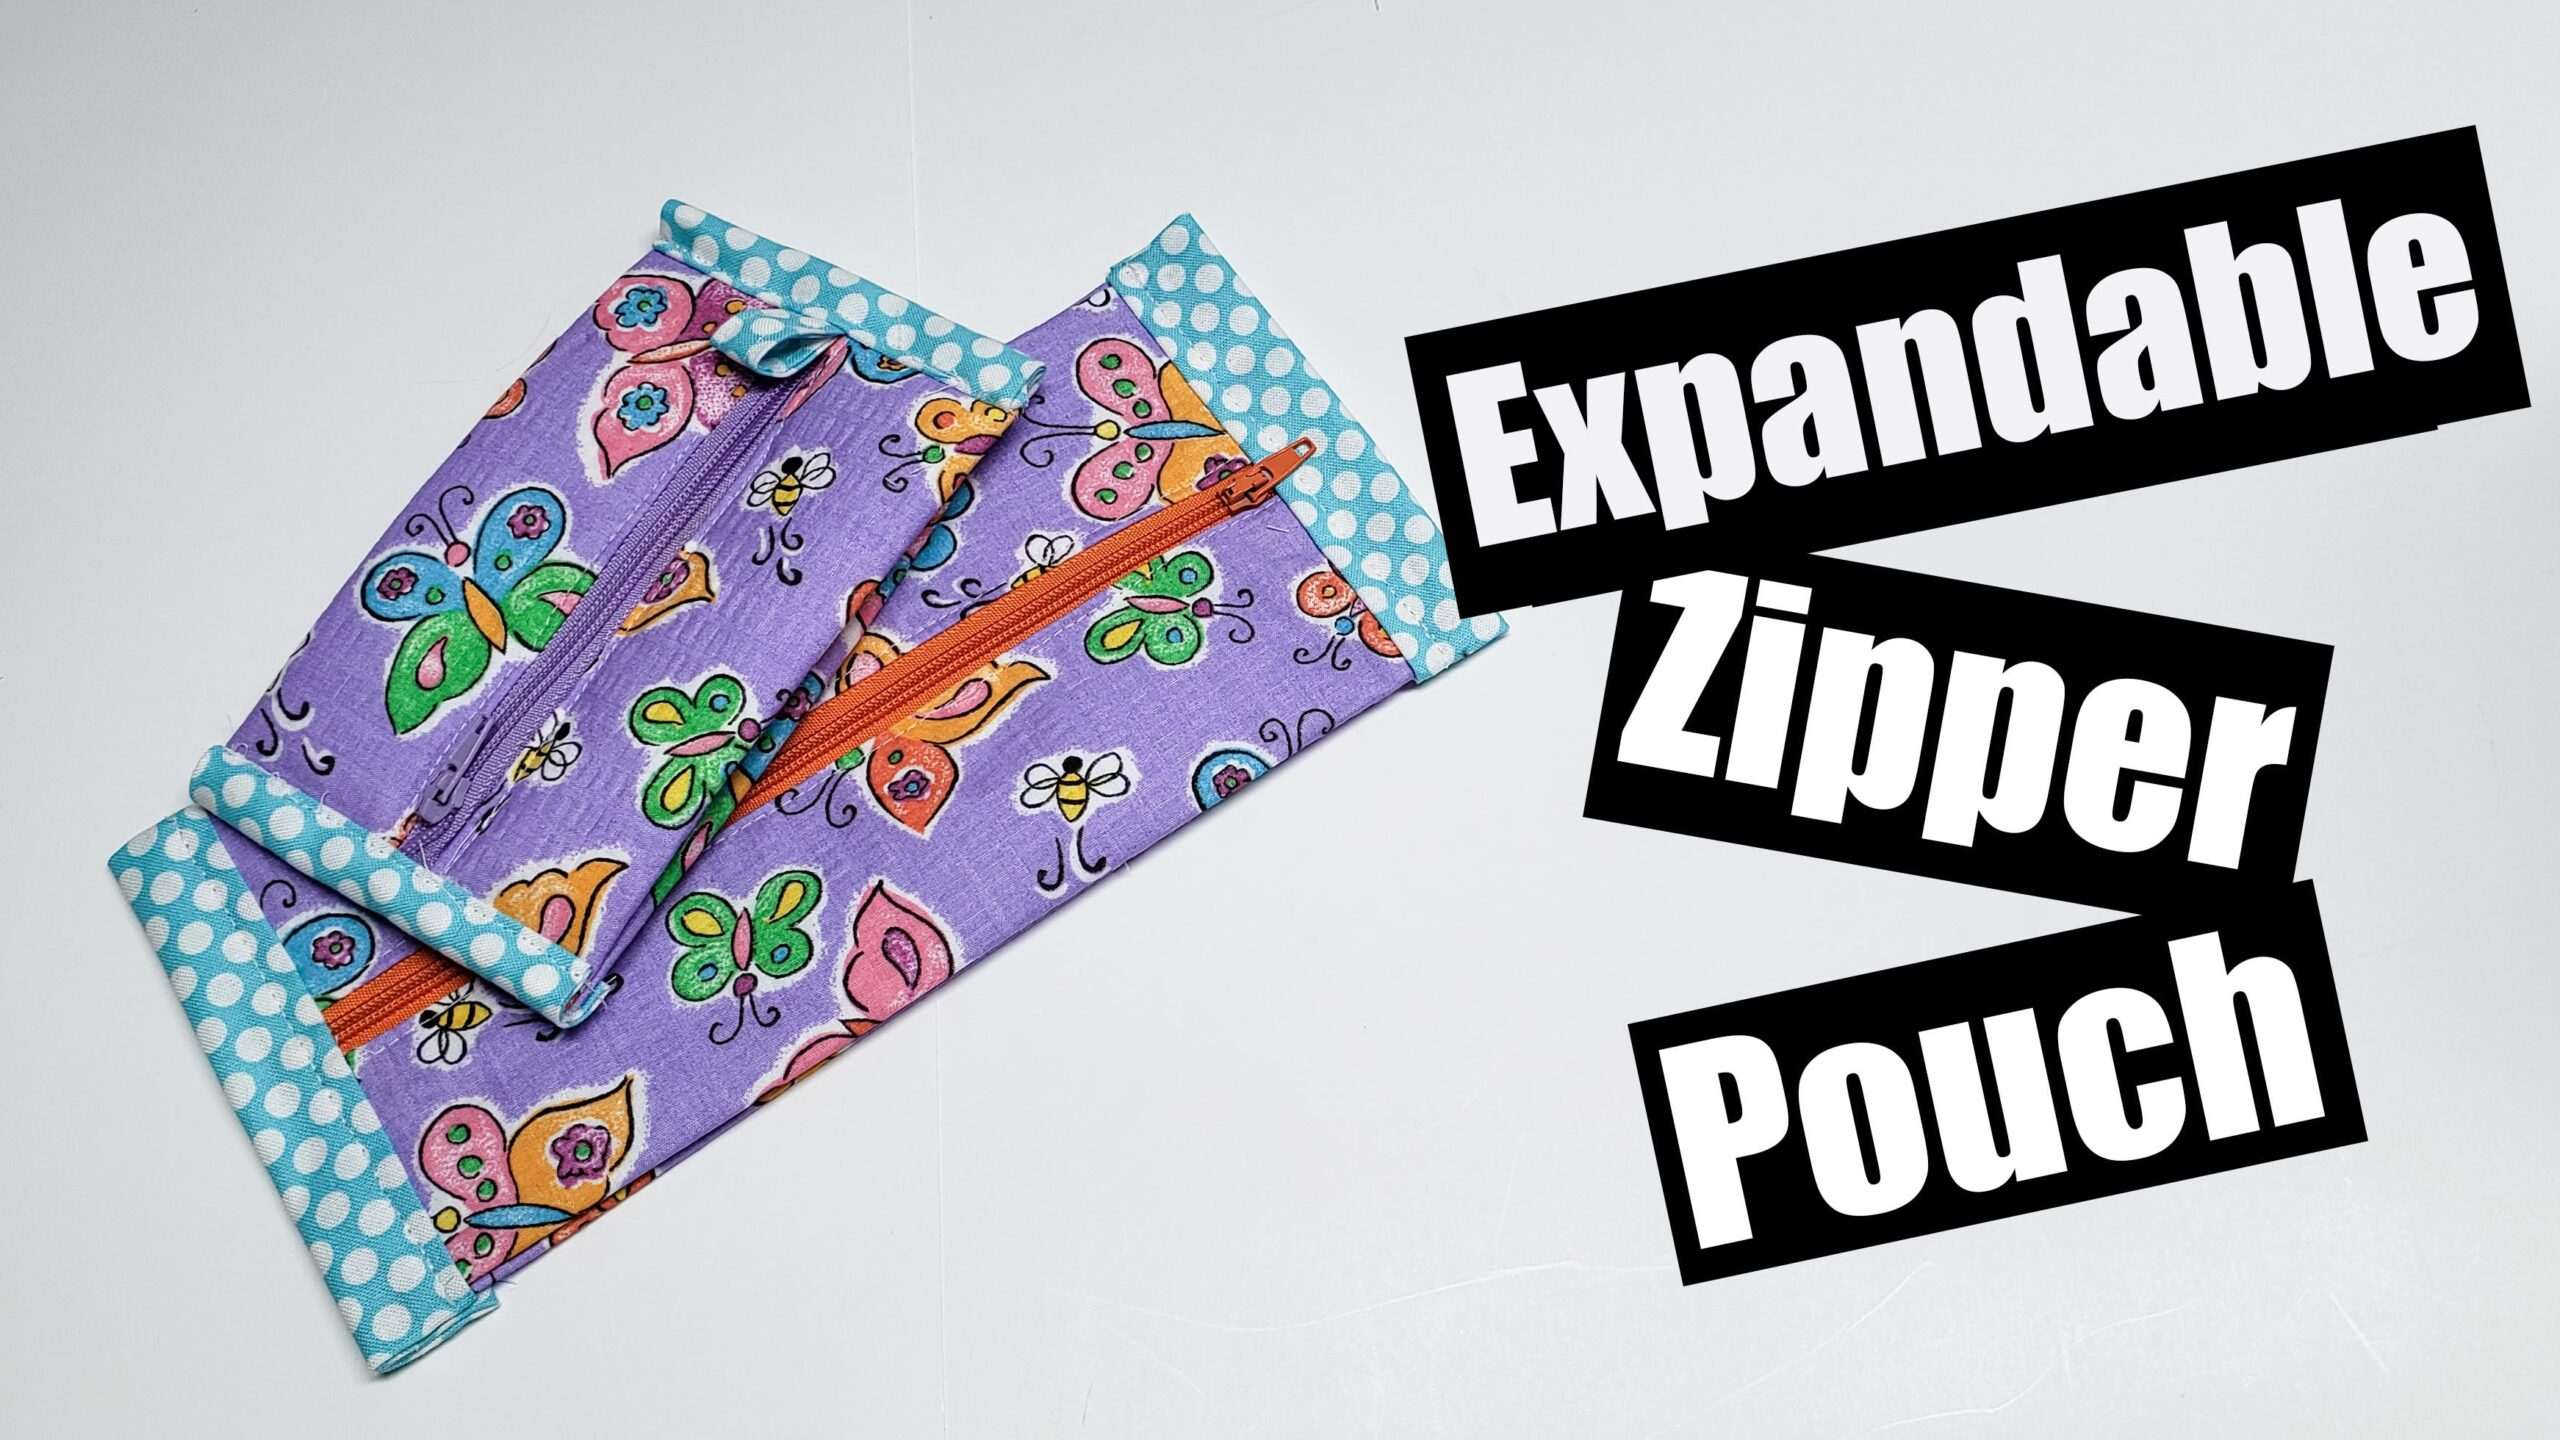 Expandable Zipper pouch